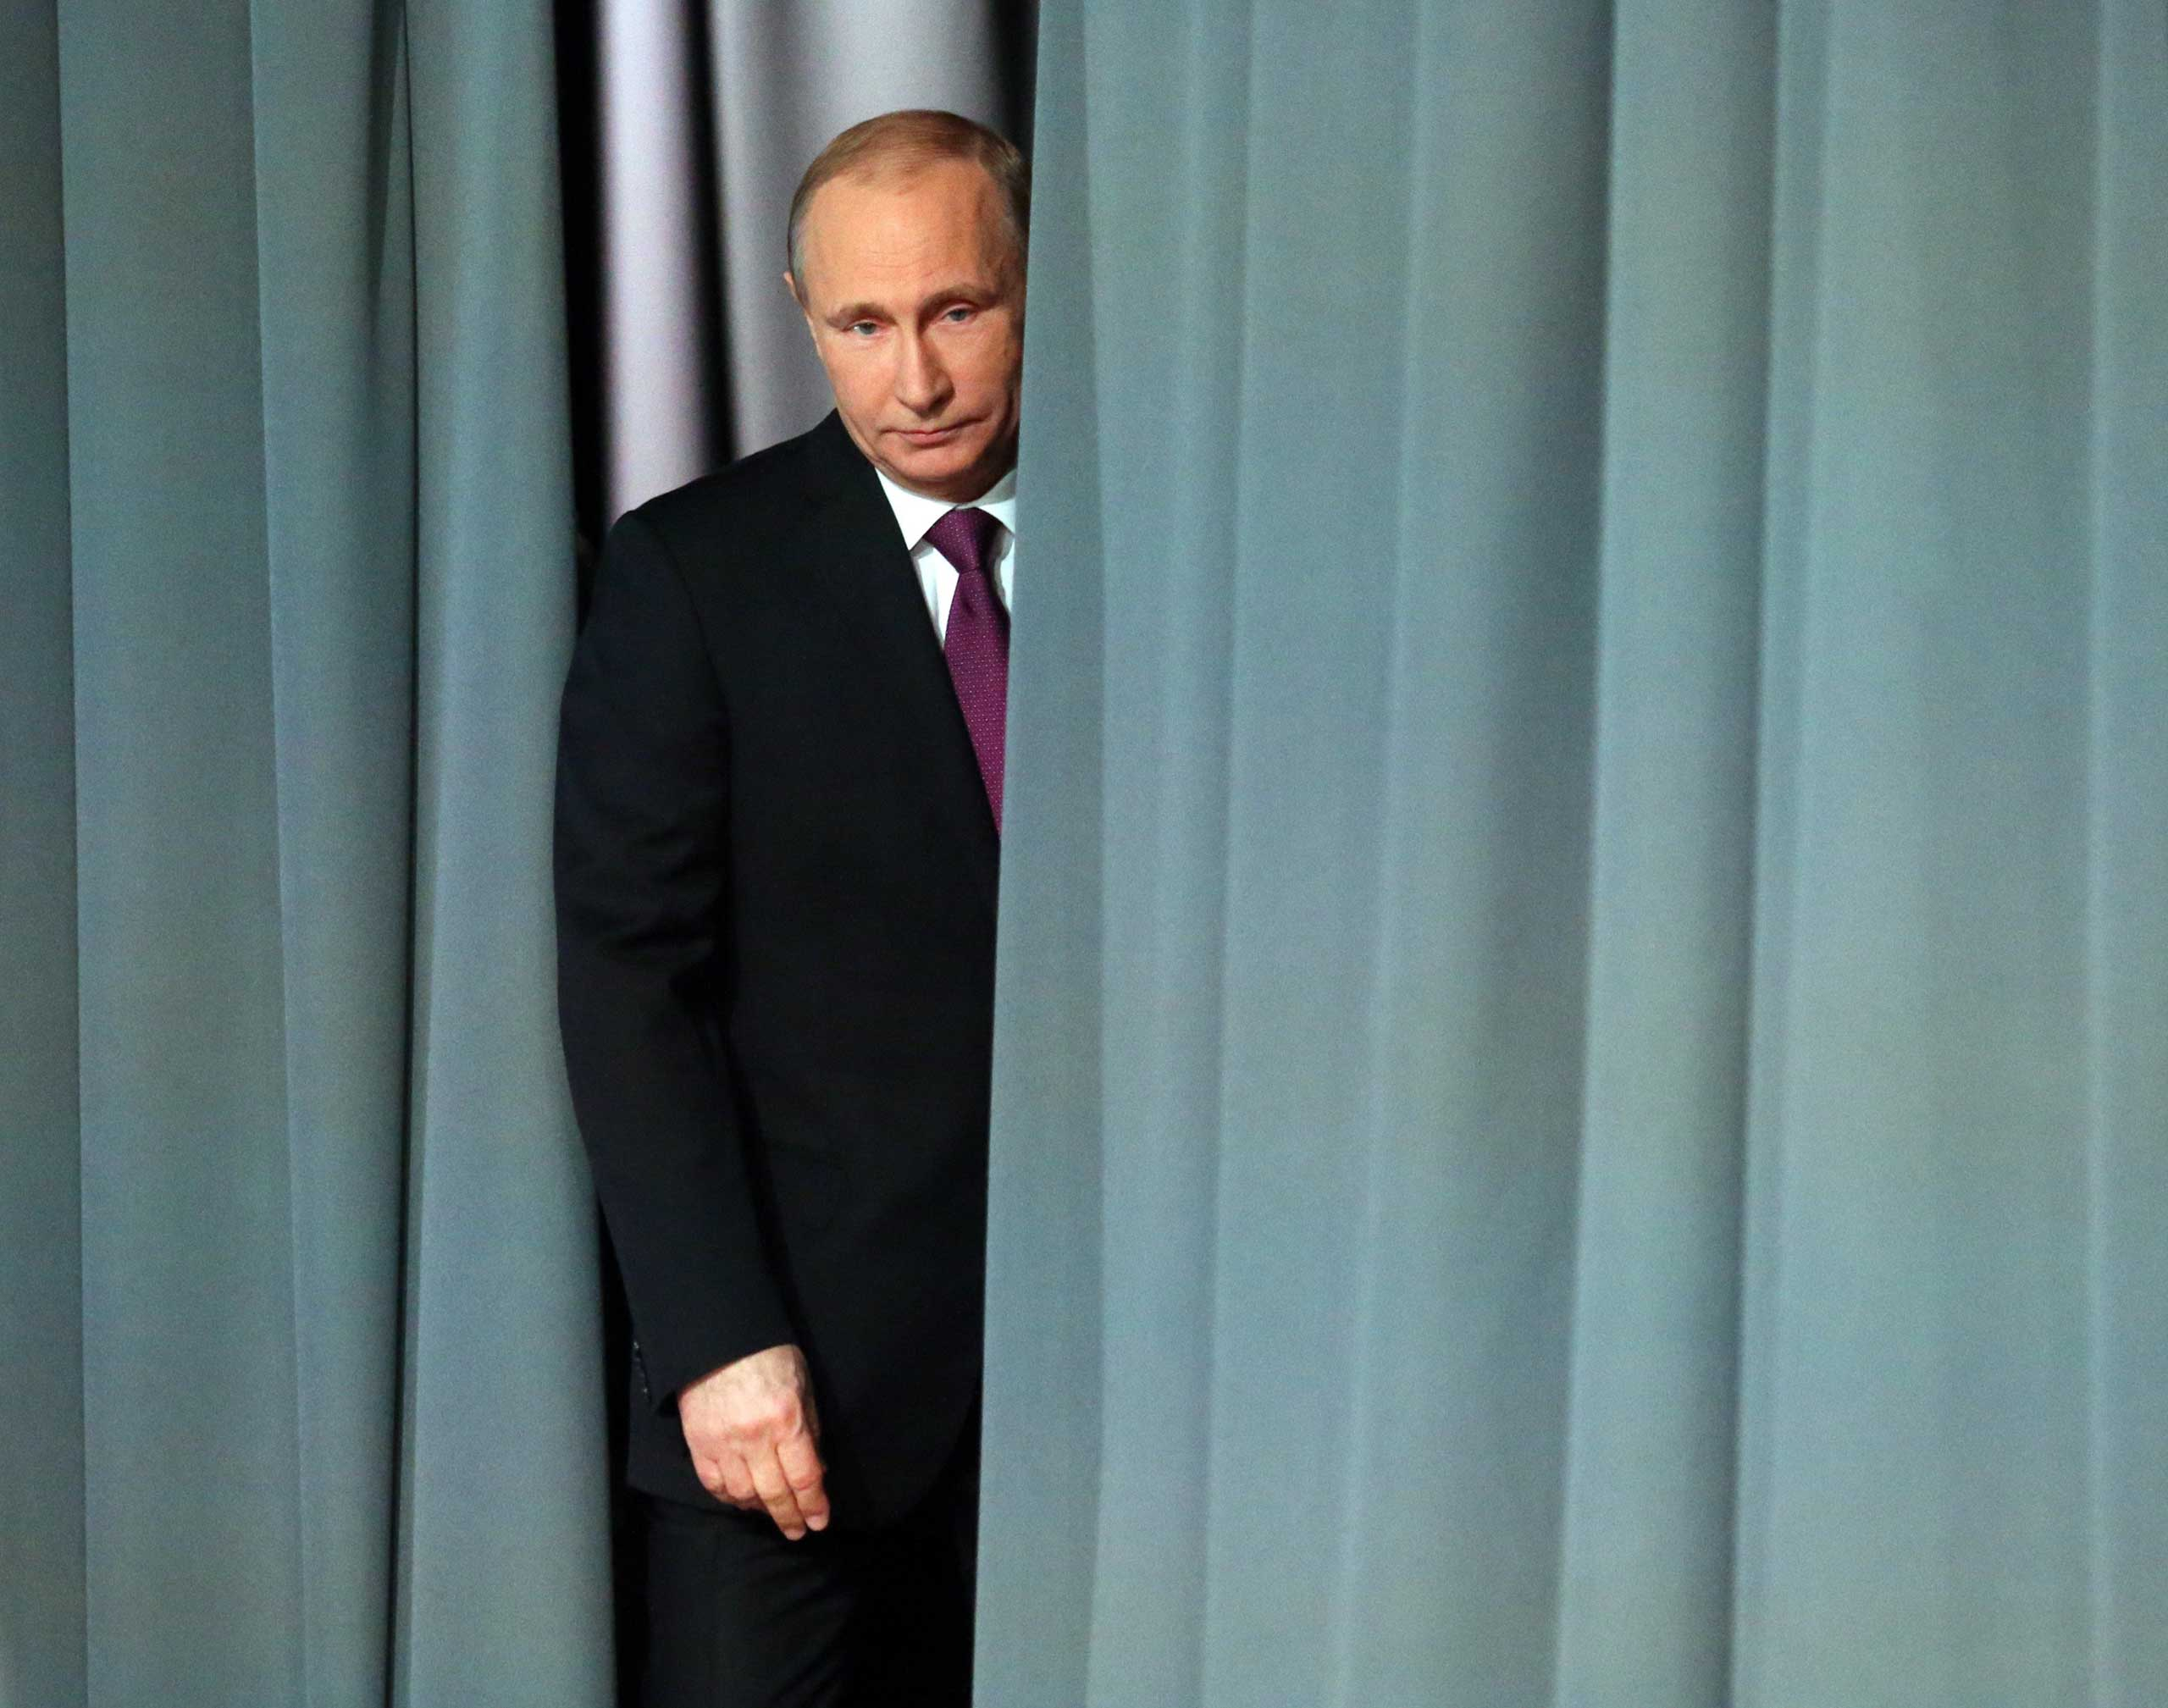 President Vladimir Putin during an annual press conference on Dec. 18, 2014 in Moscow.